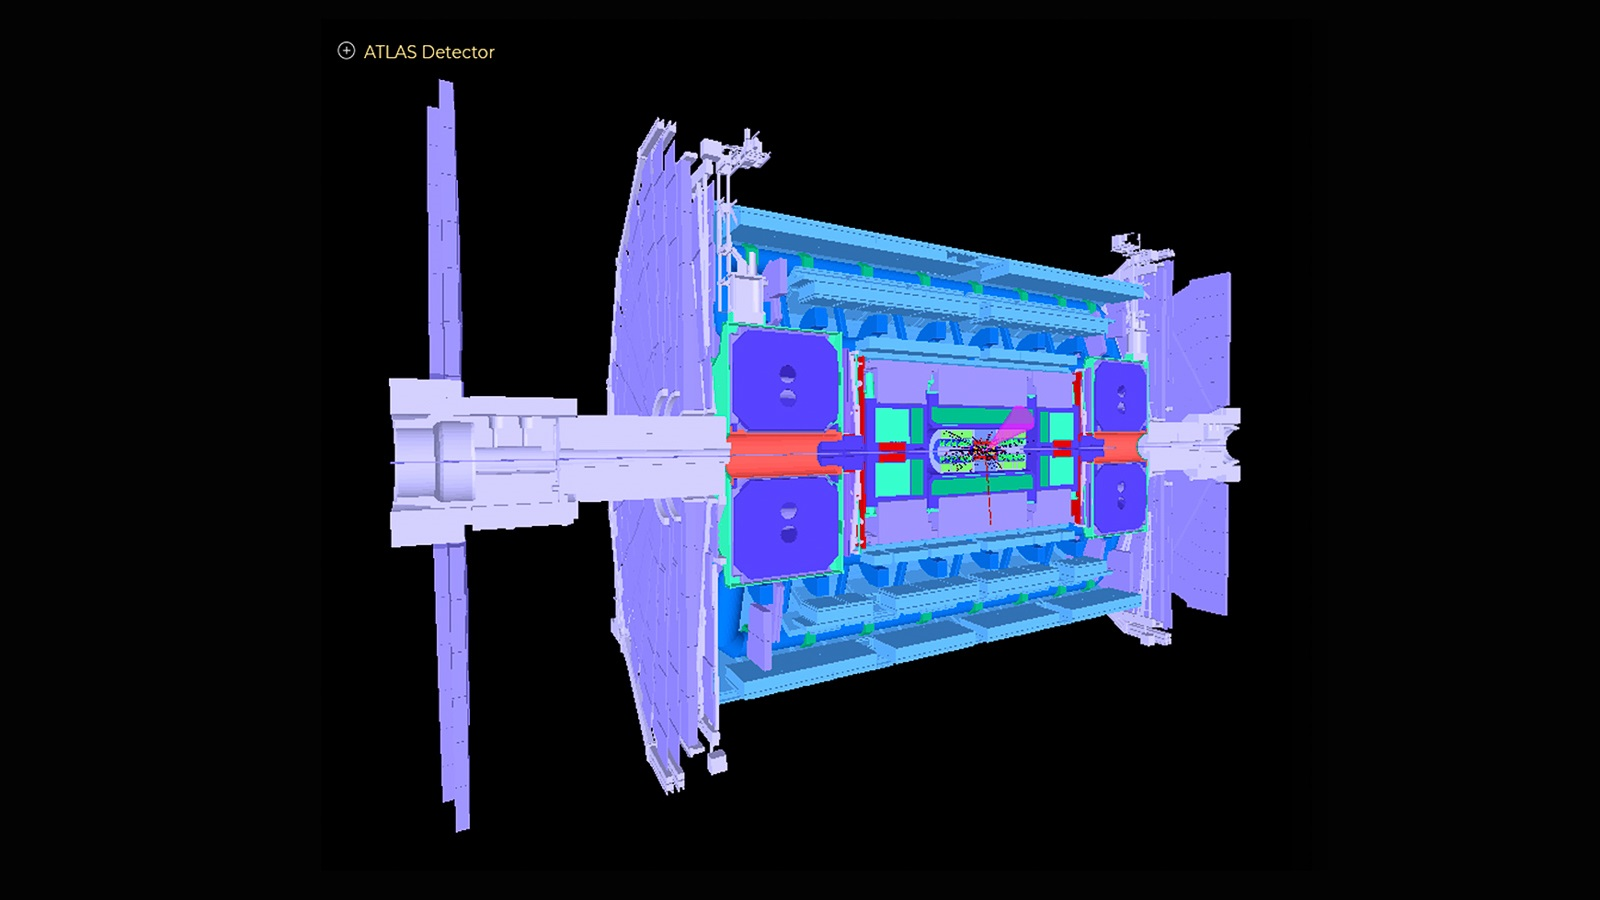 Schematic of ATLAS detector in the Large Hadron Collider. (Image by ATLAS Collaboration.)